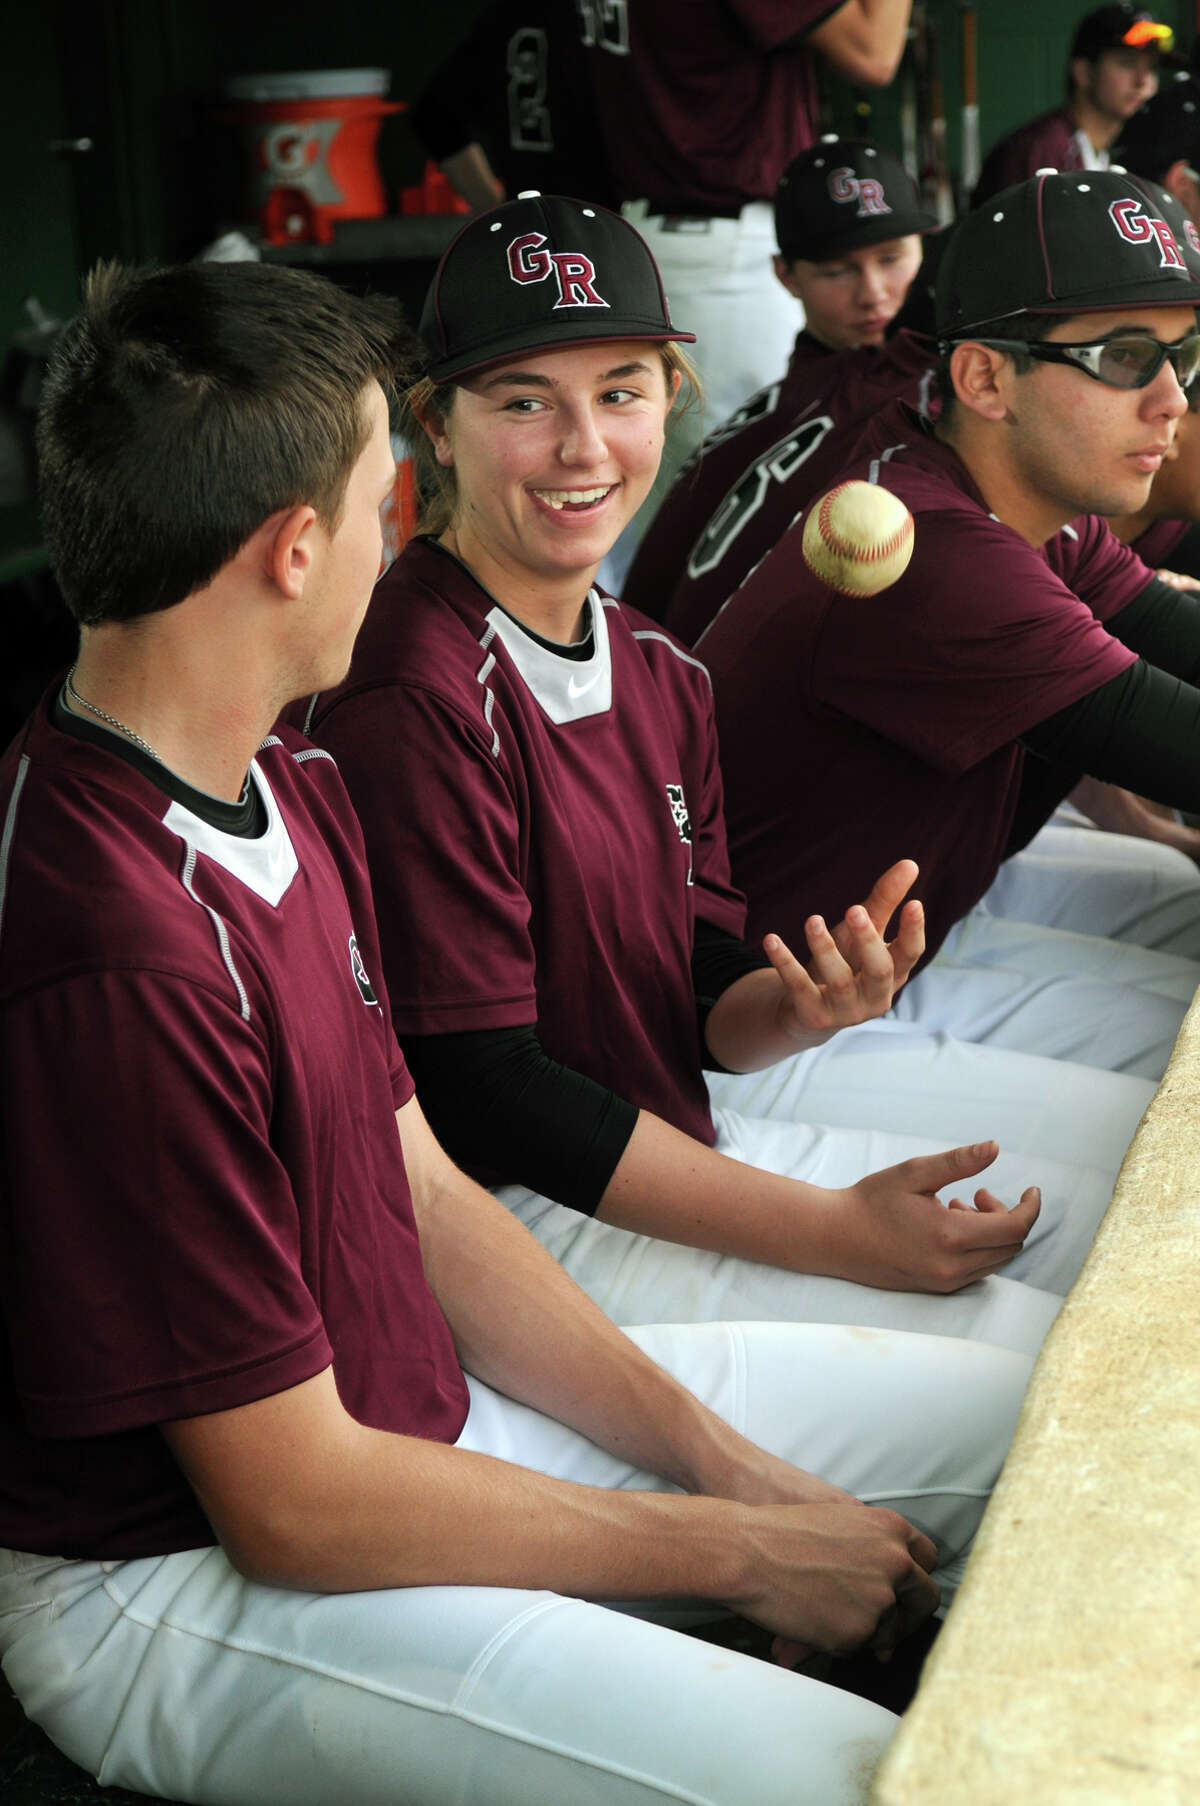 Sarah Hudek, center, a junior at George Ranch High School and a pitcher with the Longhorns, stays loose with teammates Kevin Kupps, left, a junior pitcher, and Gabe Rodriguez, right, a junior pitcher/outfielder, during a recent game.